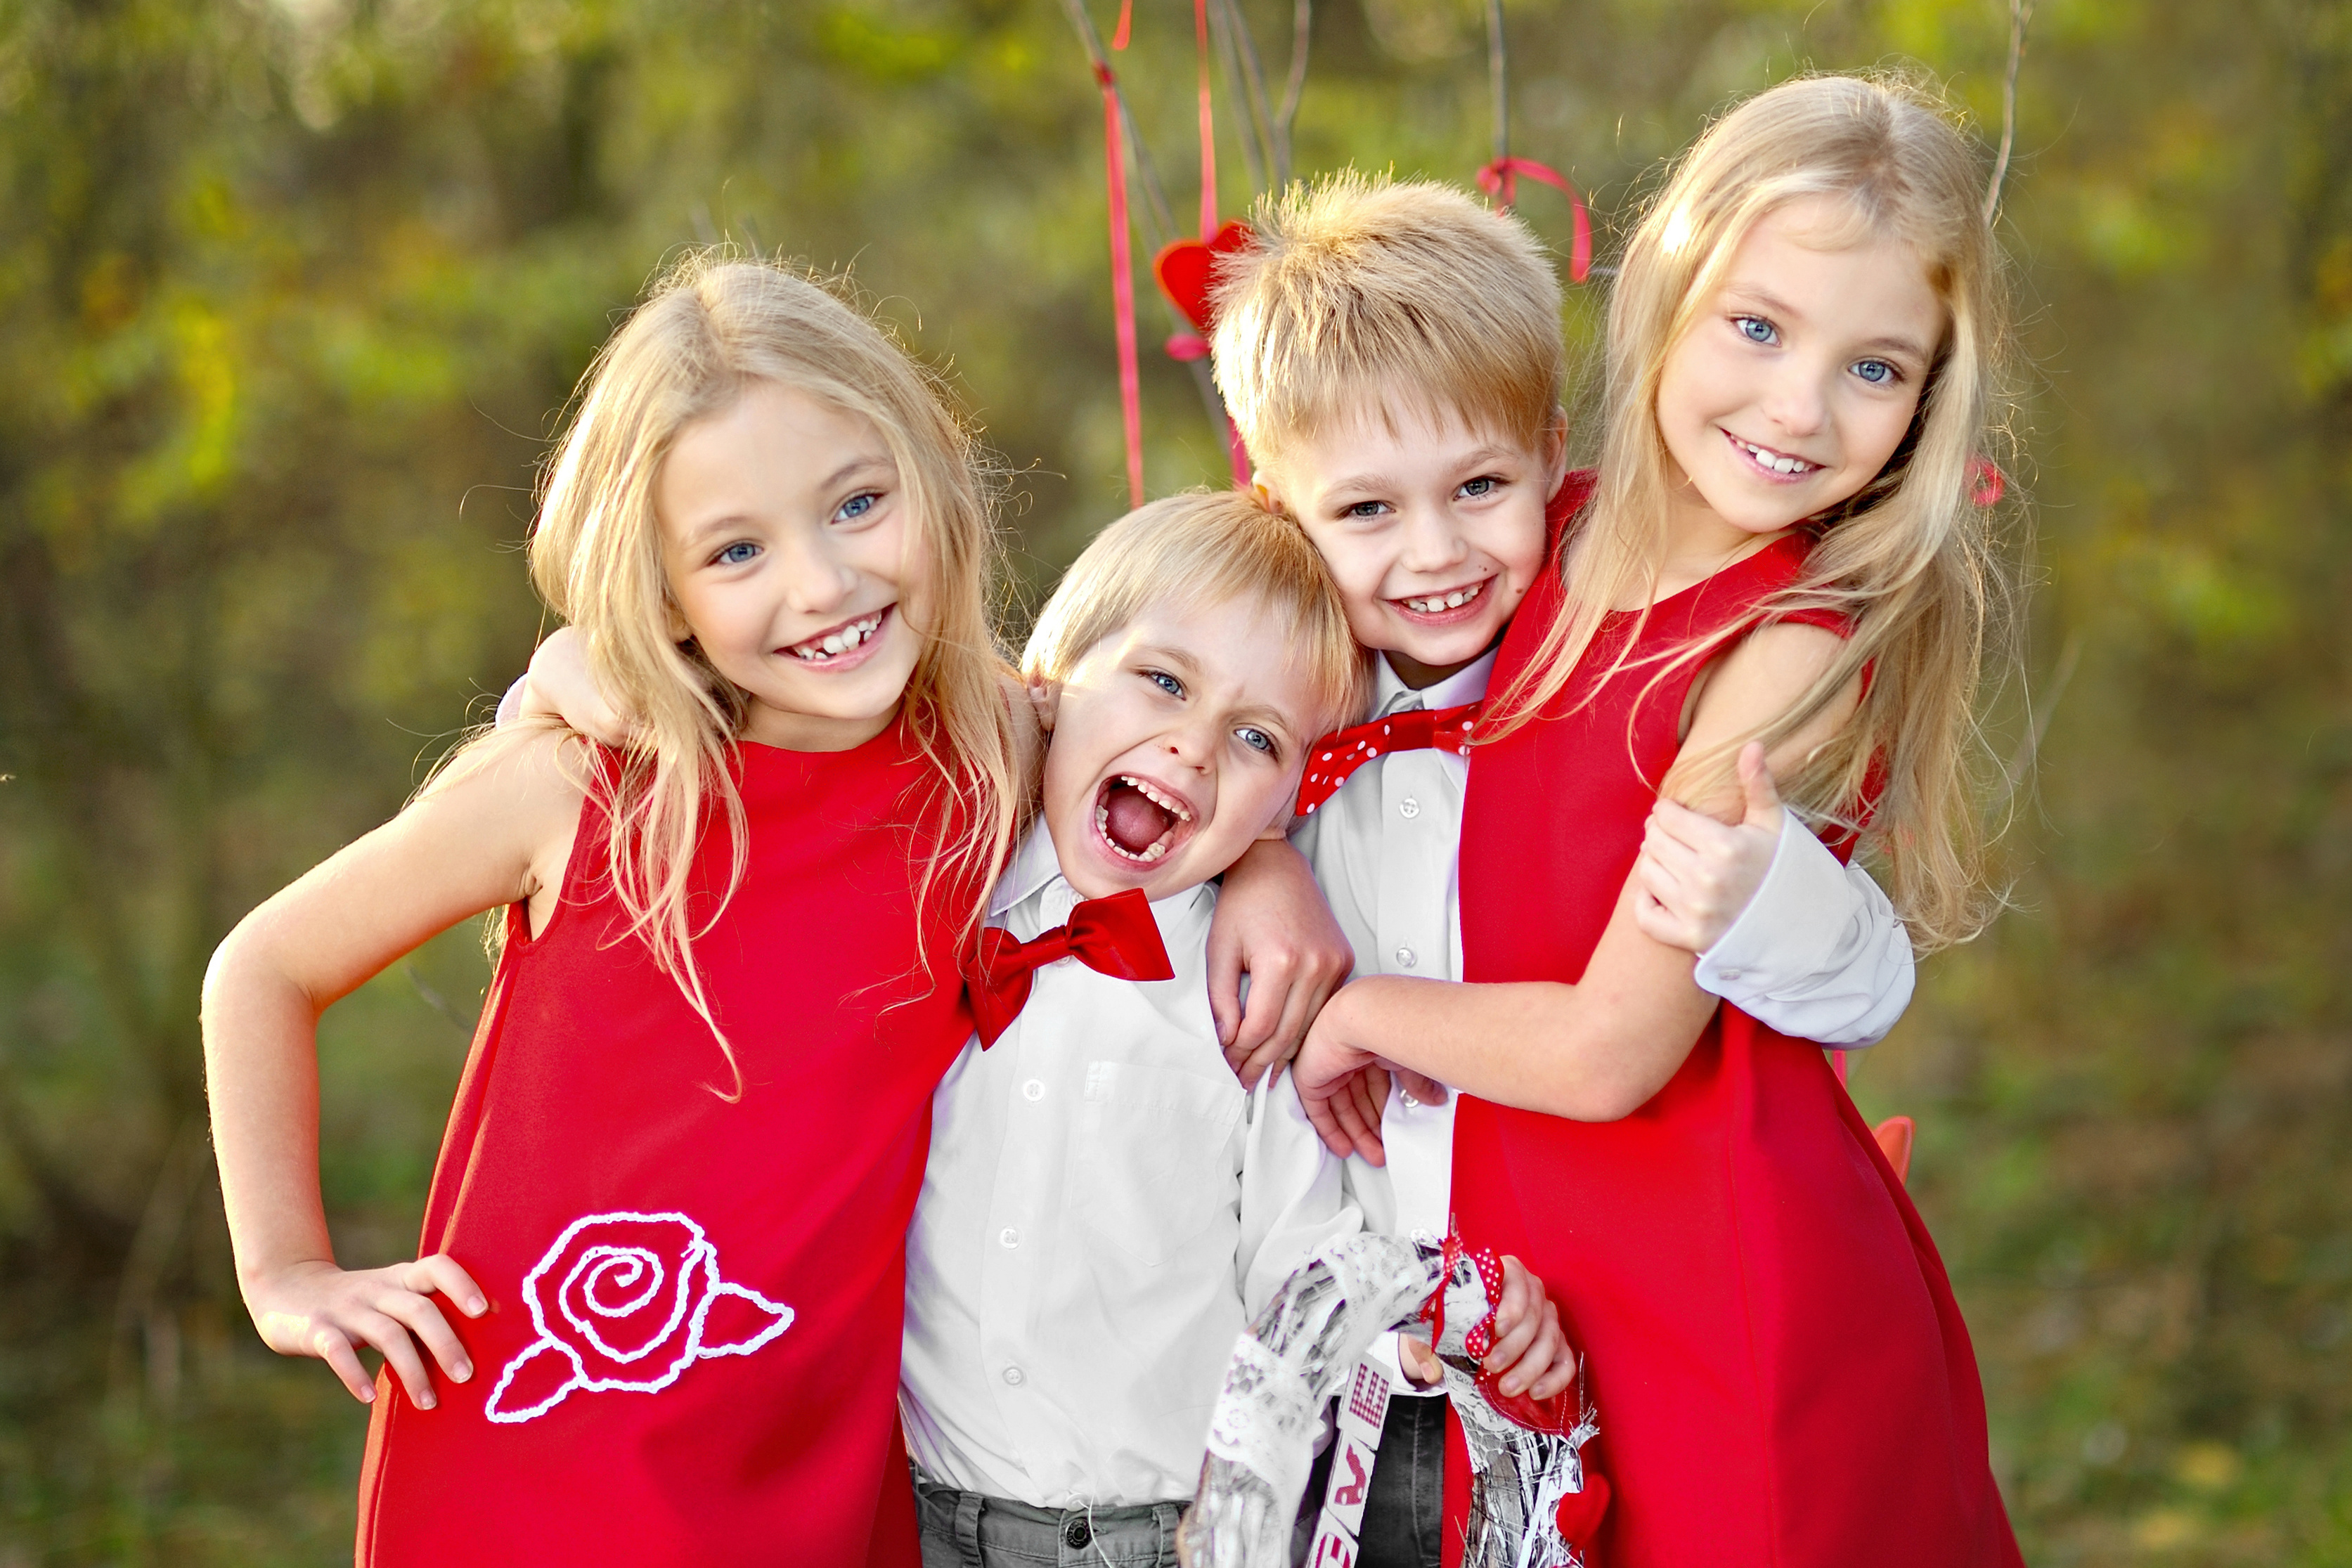 7 Fun Ways to Celebrate Valentine's Day as a Family